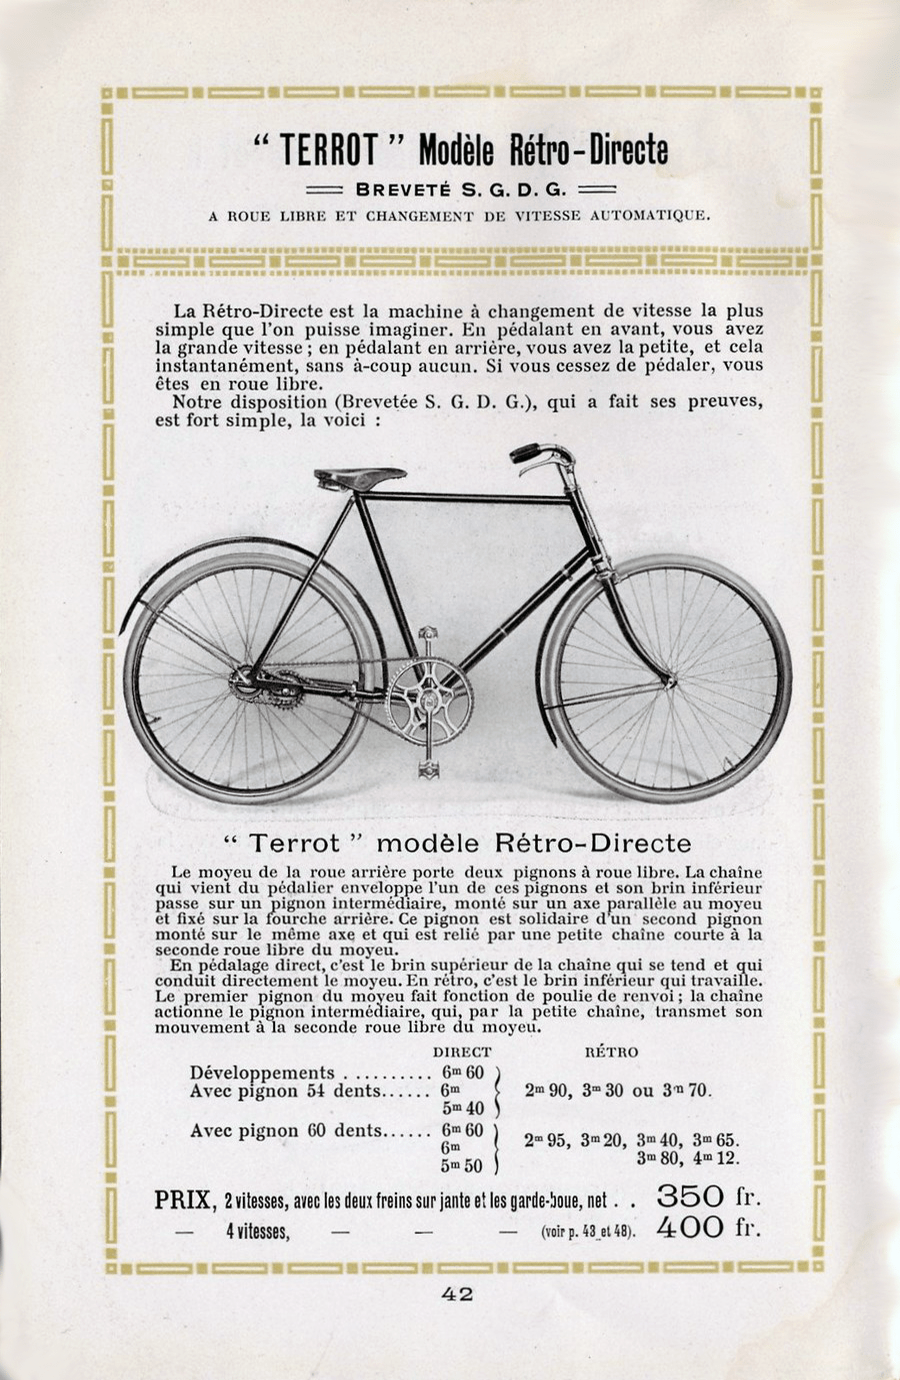 ebykr-terrot-1913-catalog-2nd-edition-page-42